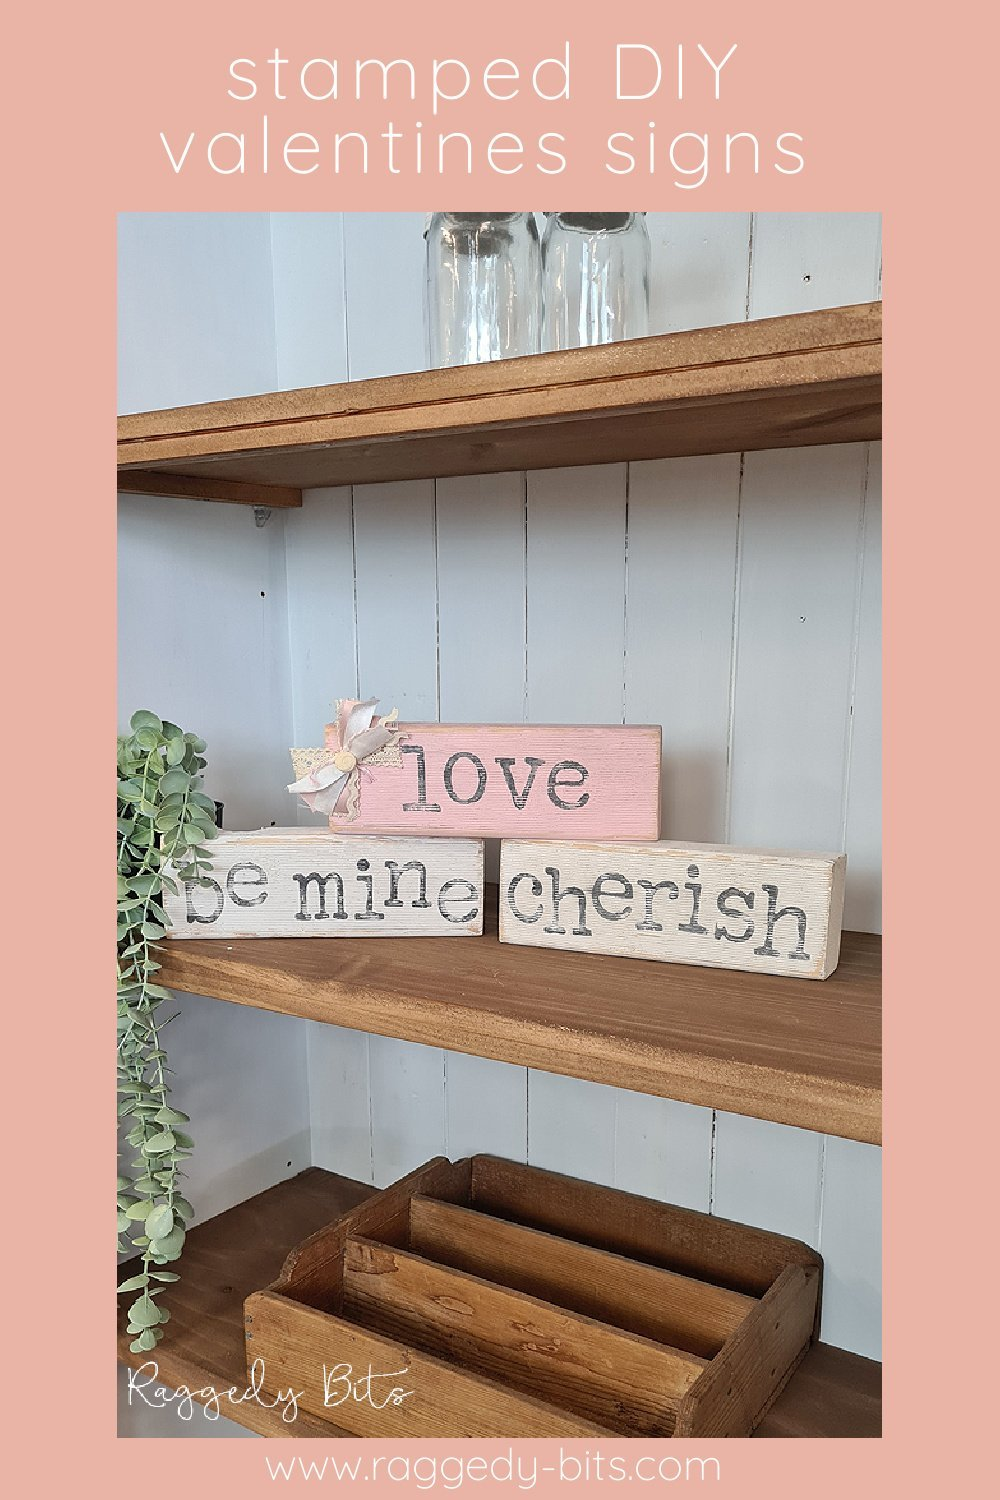 Easy Stamped Farmhouse Wooden Valentines Block Signs to make in one afternoon using Dixie Belle Chalk Mineral Paint and IOD Typesetting Decor Stamp | www.raggedy-bits.com | #raggedybits #DIY #valentinesday #homedecor #farmhouse #vintage #sign #dixiebelle #iod